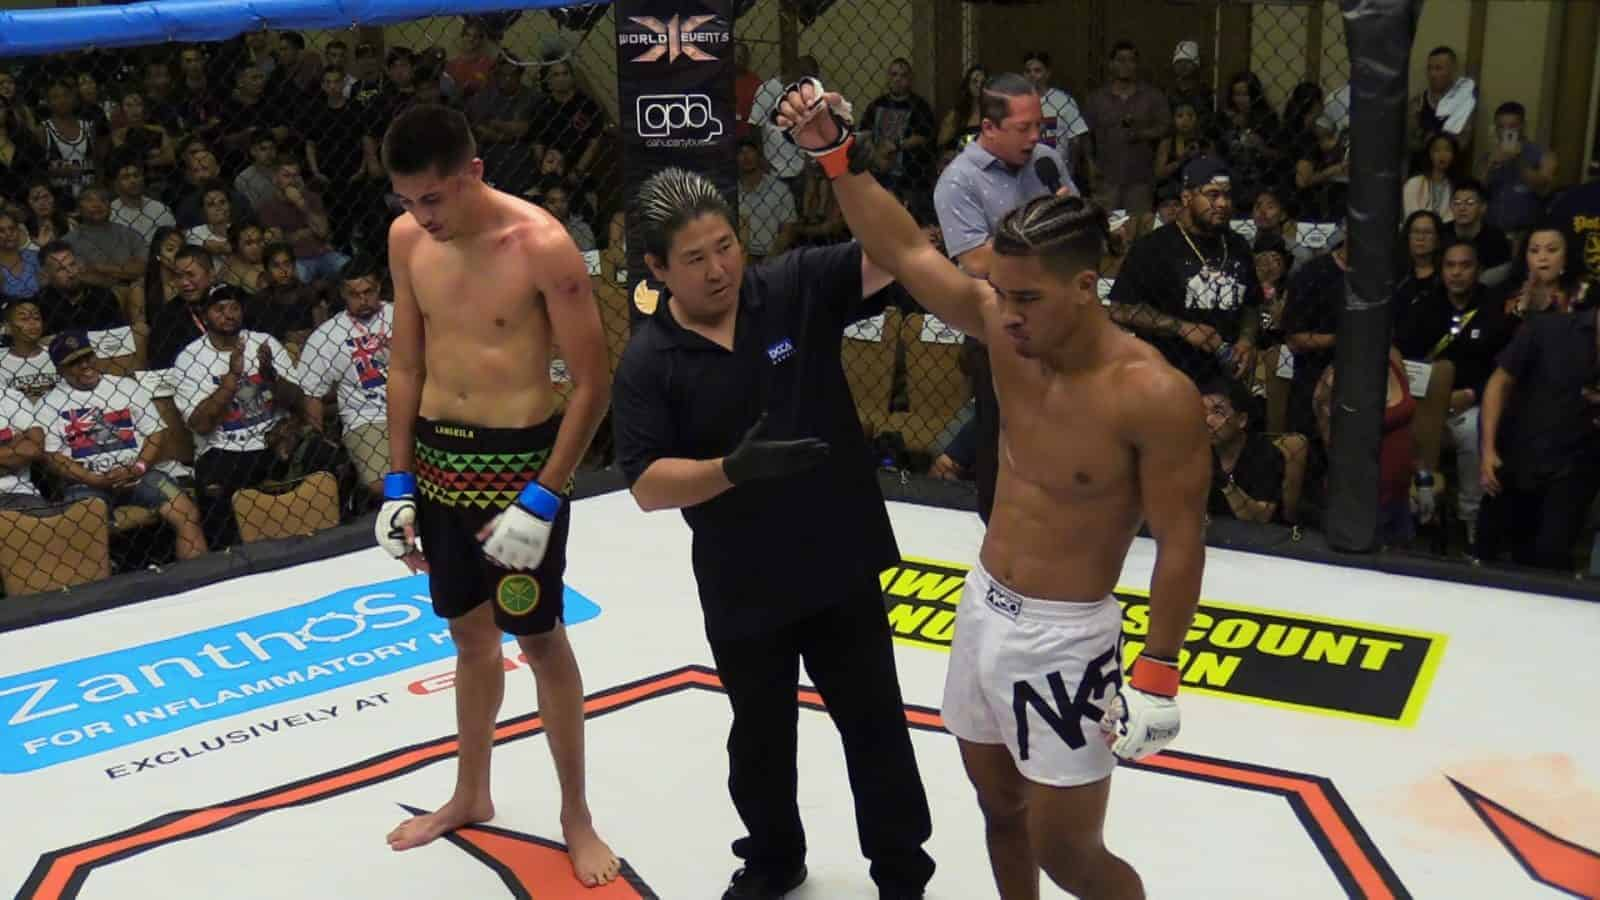 Makoa Cooper defeated Nathan McKenzie via Submission (Tapping Out before Round 2)